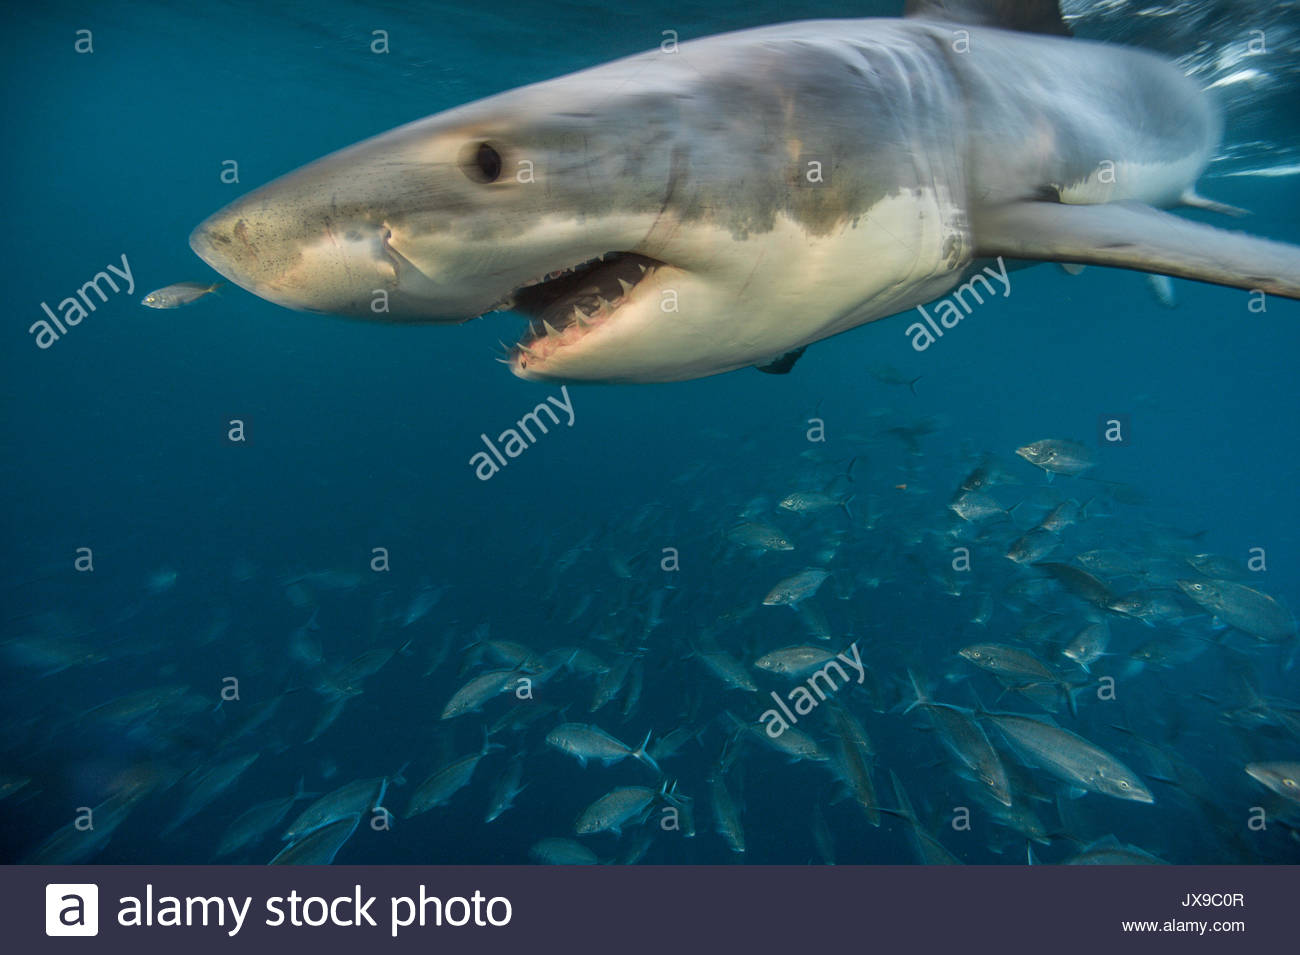 Great White Shark Mouth Open Stock Photos & Great White